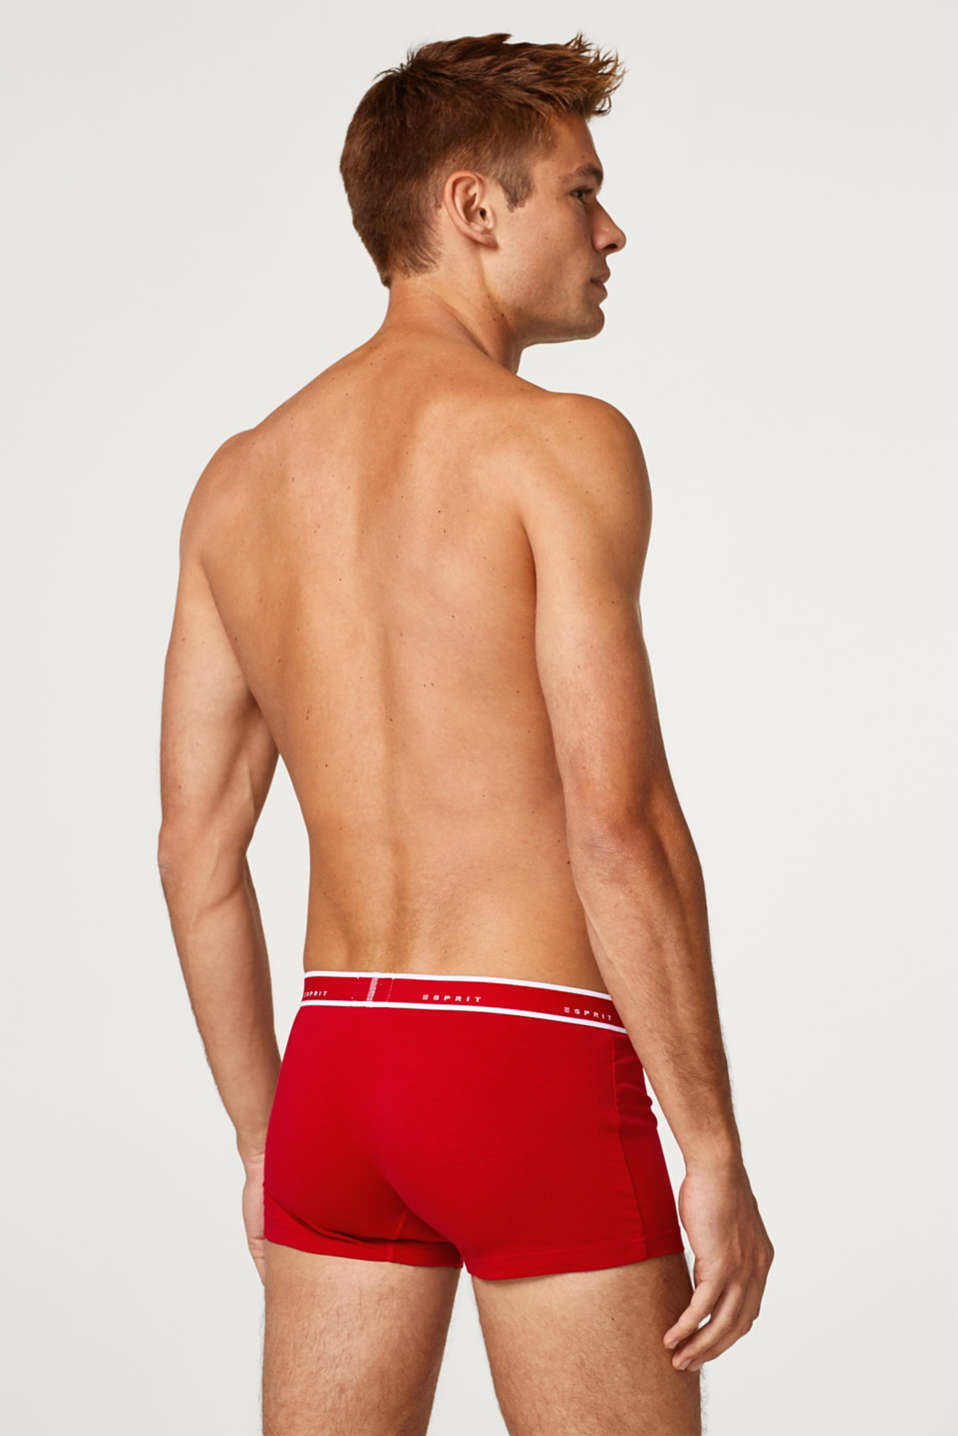 Triple pack of hipster shorts with a plain-coloured design